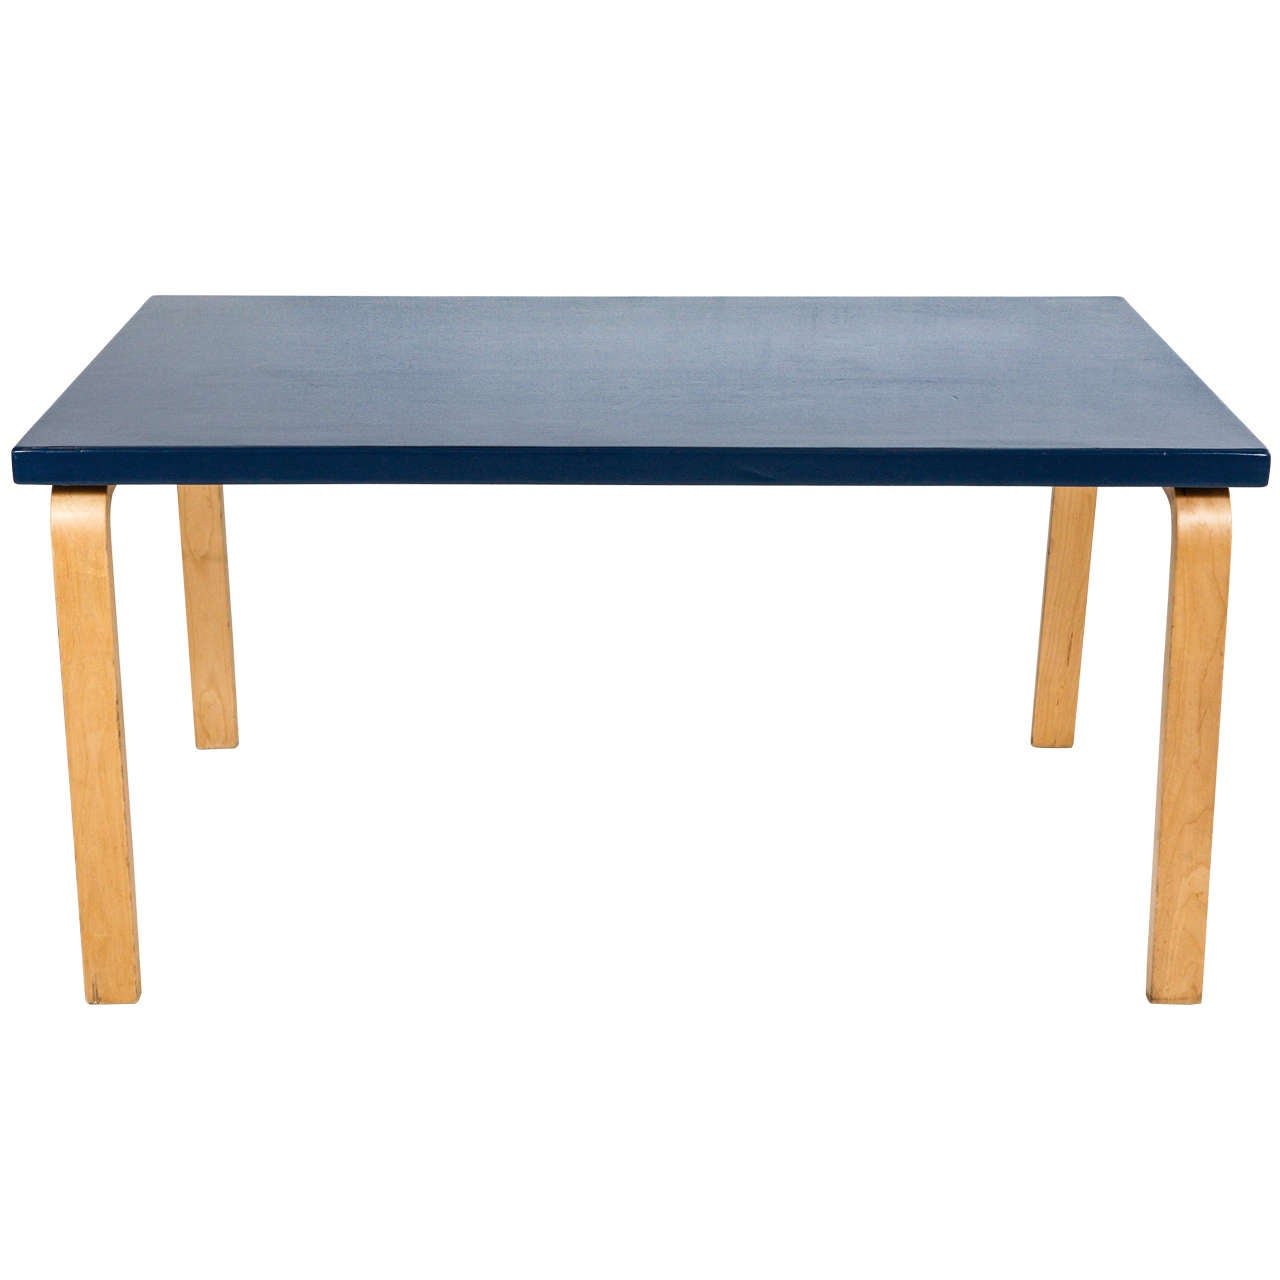 Alvar aalto tall coffee table with lacquered blue top at 1stdibs alvar aalto tall coffee table with lacquered blue top 1 geotapseo Images